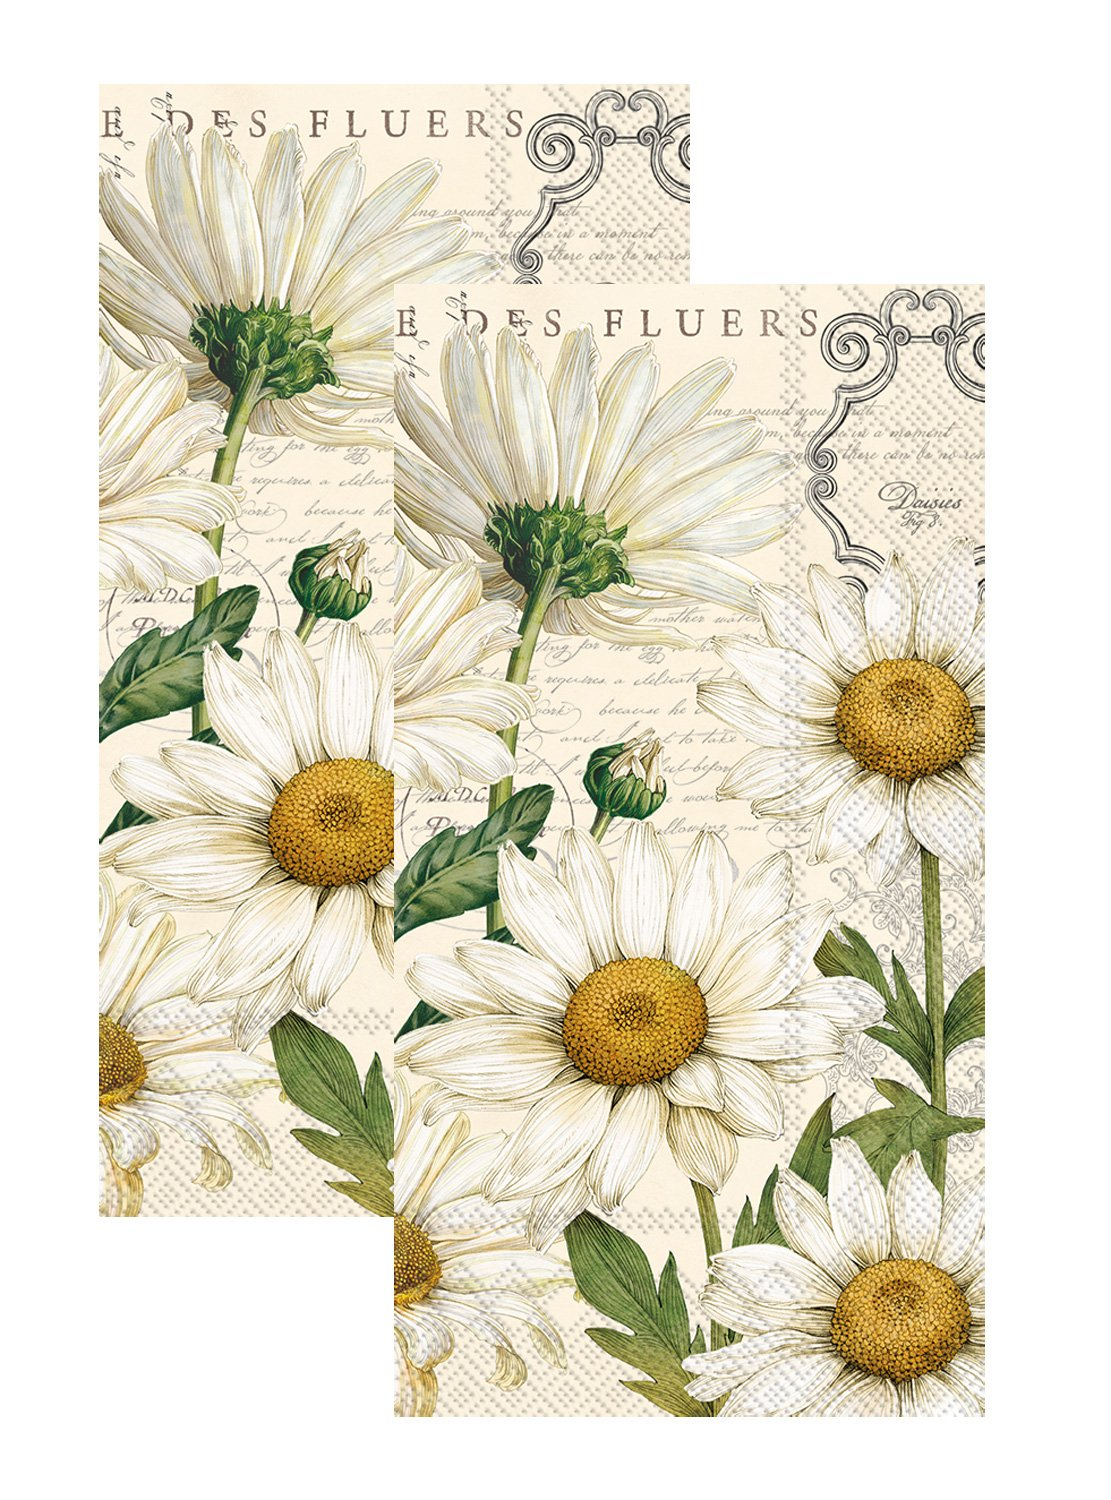 Ideal Home Range 3-Ply Paper Shasta Daisy, 16 Count Guest Towel Napkins, Cream Set of 2